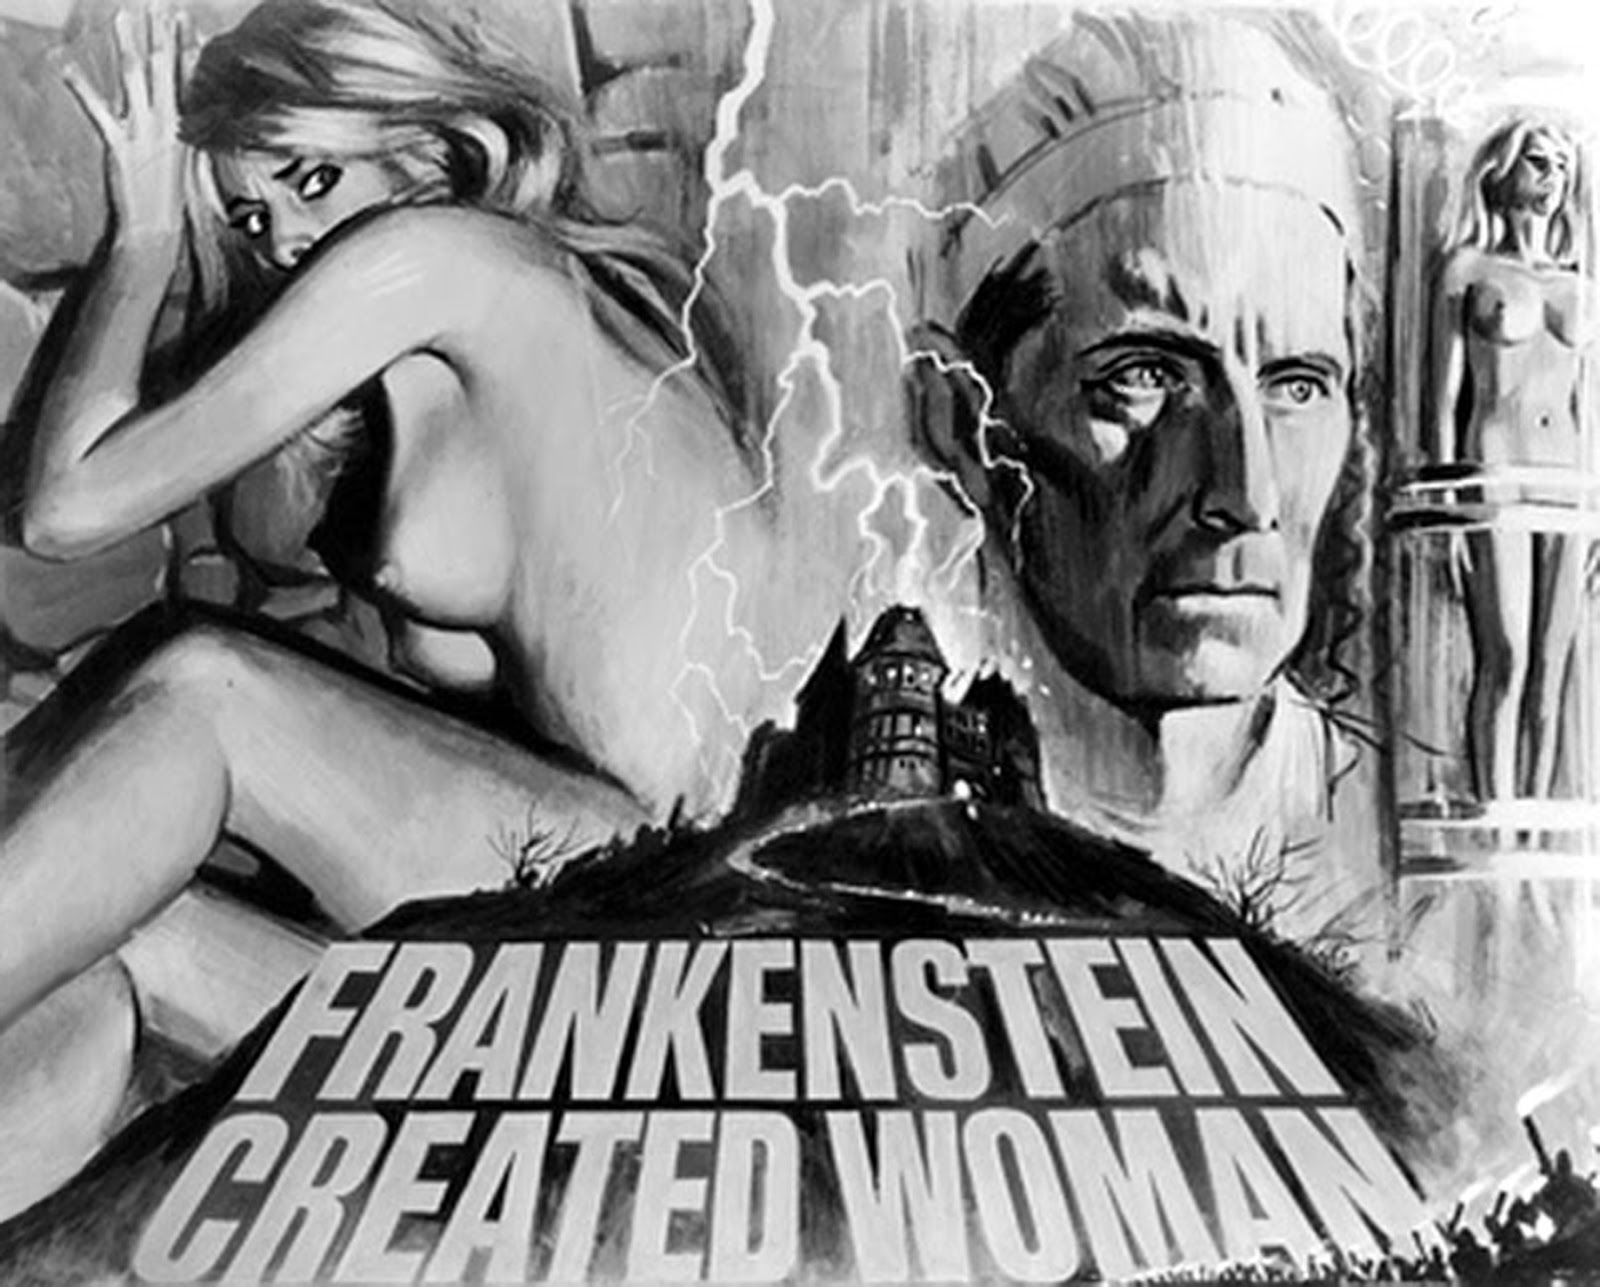 Frankenstein Created Woman (1967), poster